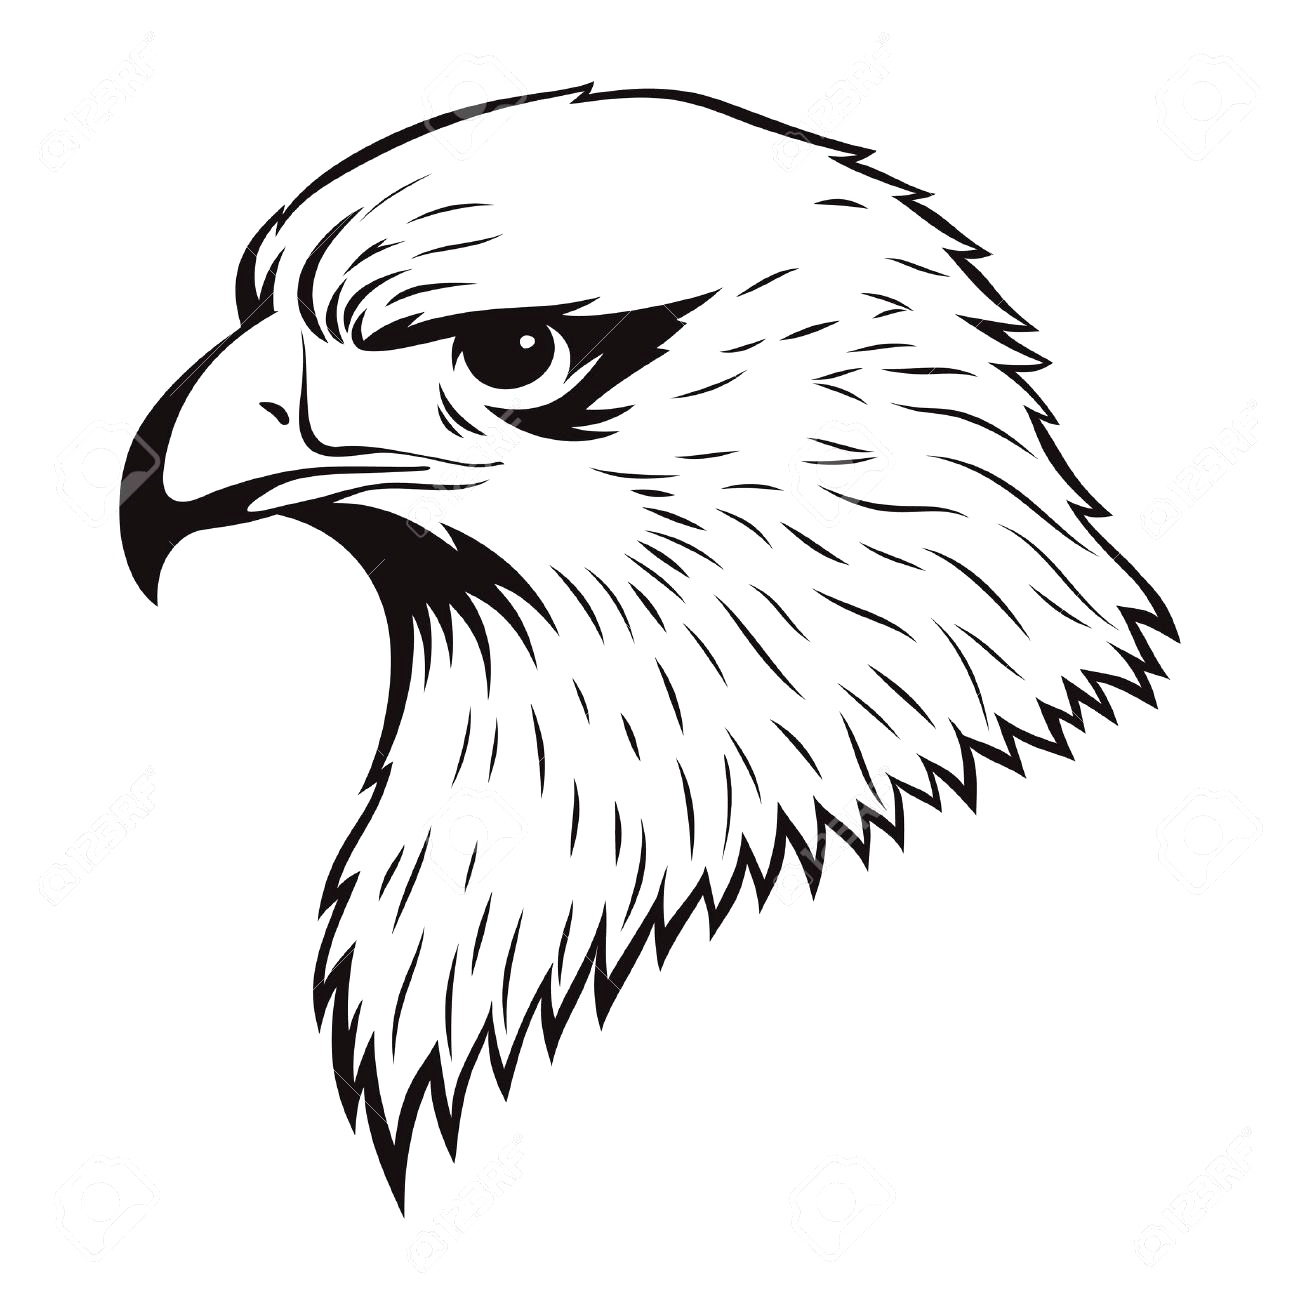 Electric Simple Eagle Drawings How To Draw An Eagle